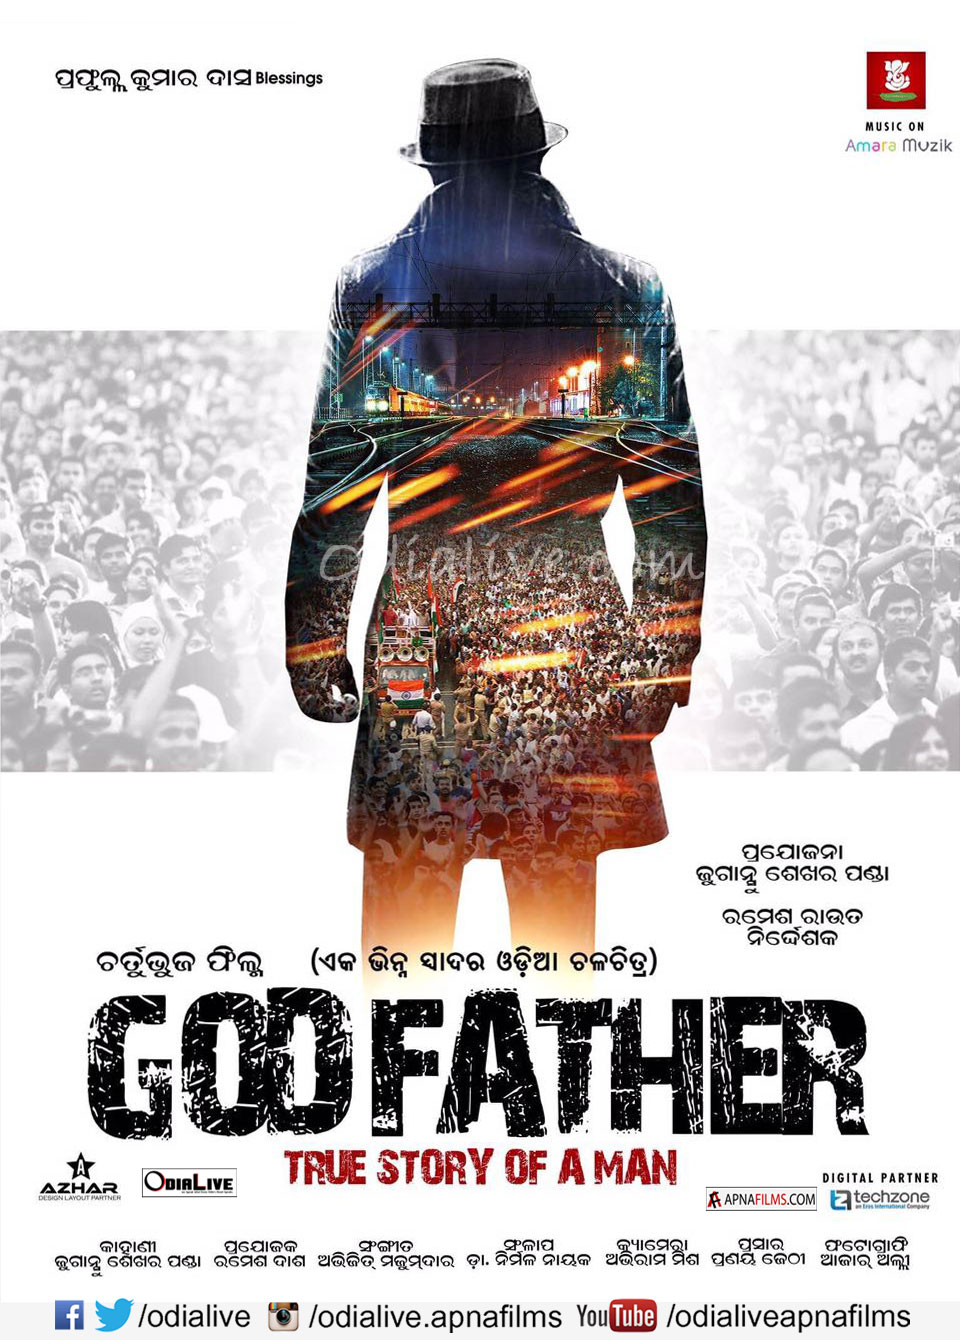 Watch God Father Odia Film trailer 2